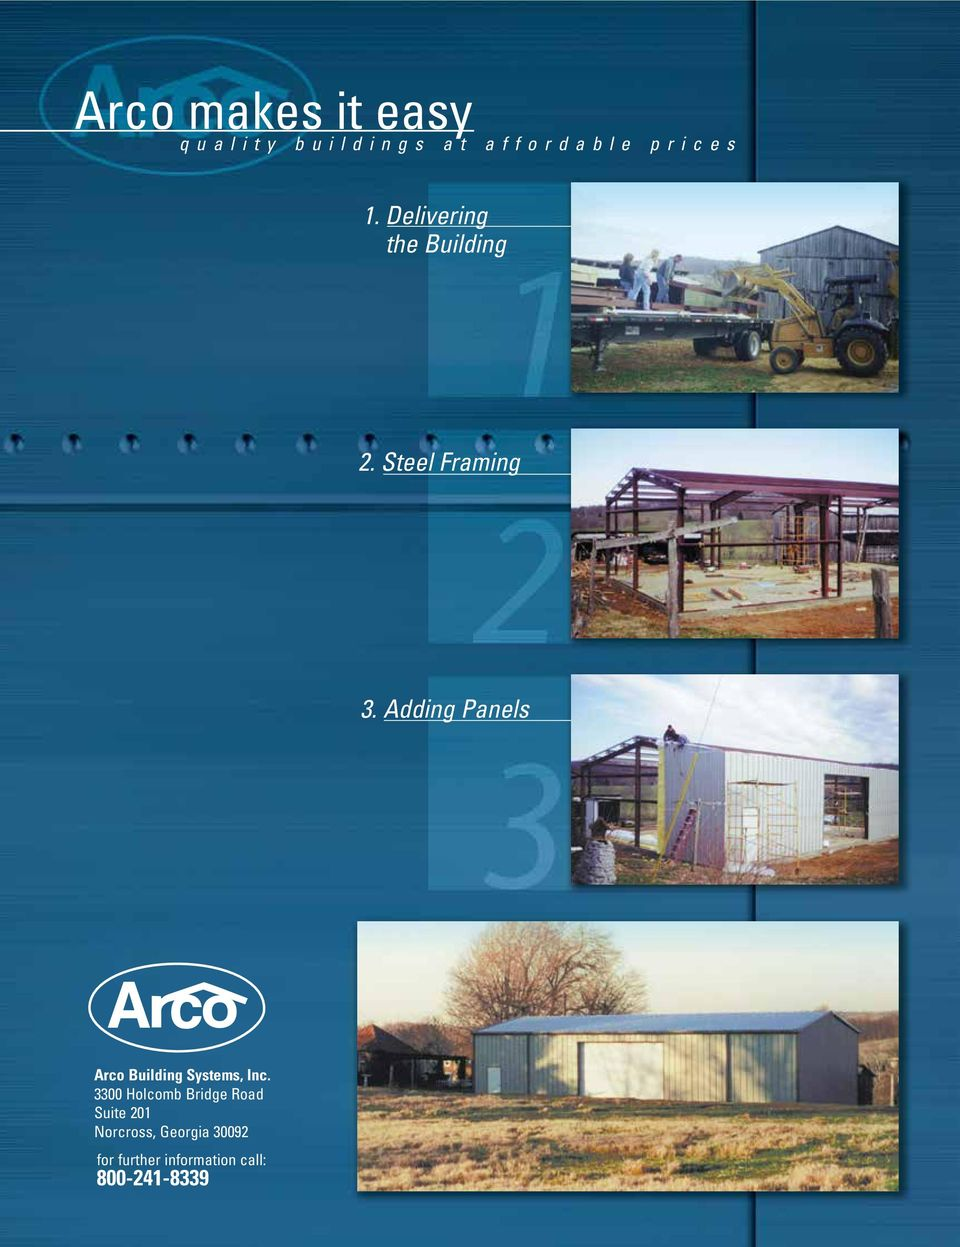 Adding Panels Arco Building Systems, Inc.